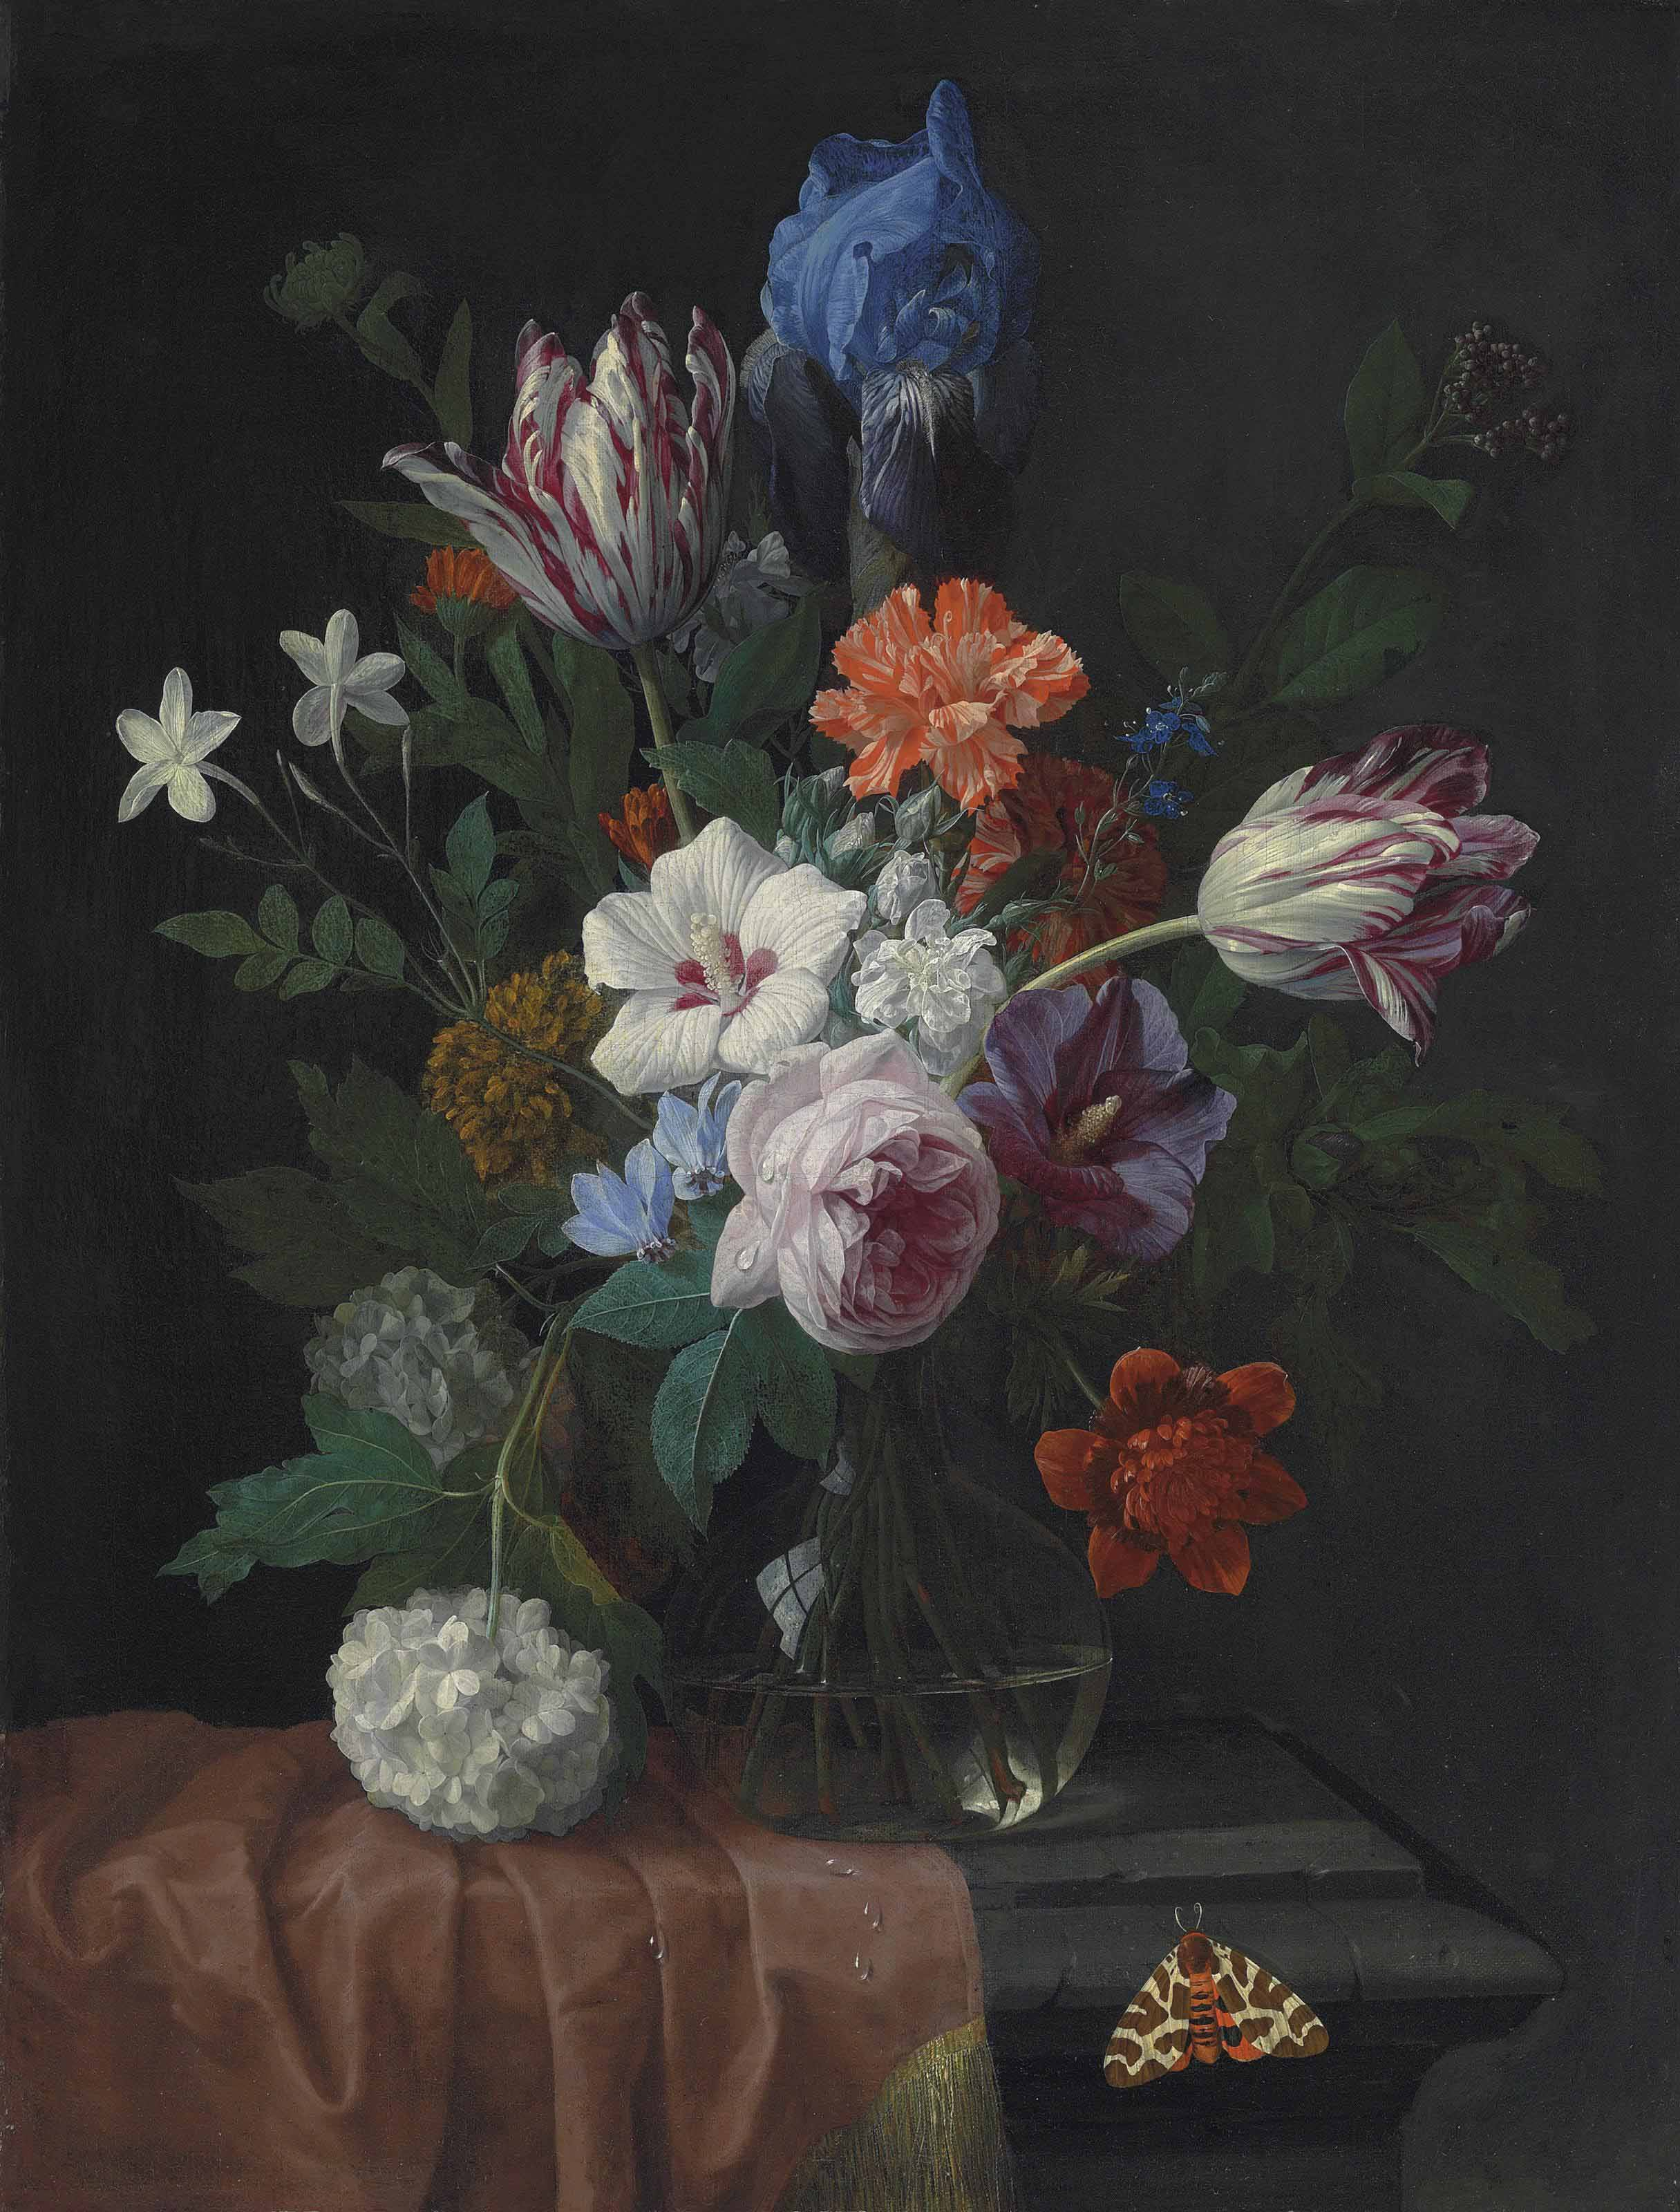 Hibiscus, parrot tulips, carnations, a rose, an iris, snowballs and other flowers in a vase on a partially draped stone ledge, with a garden tiger moth